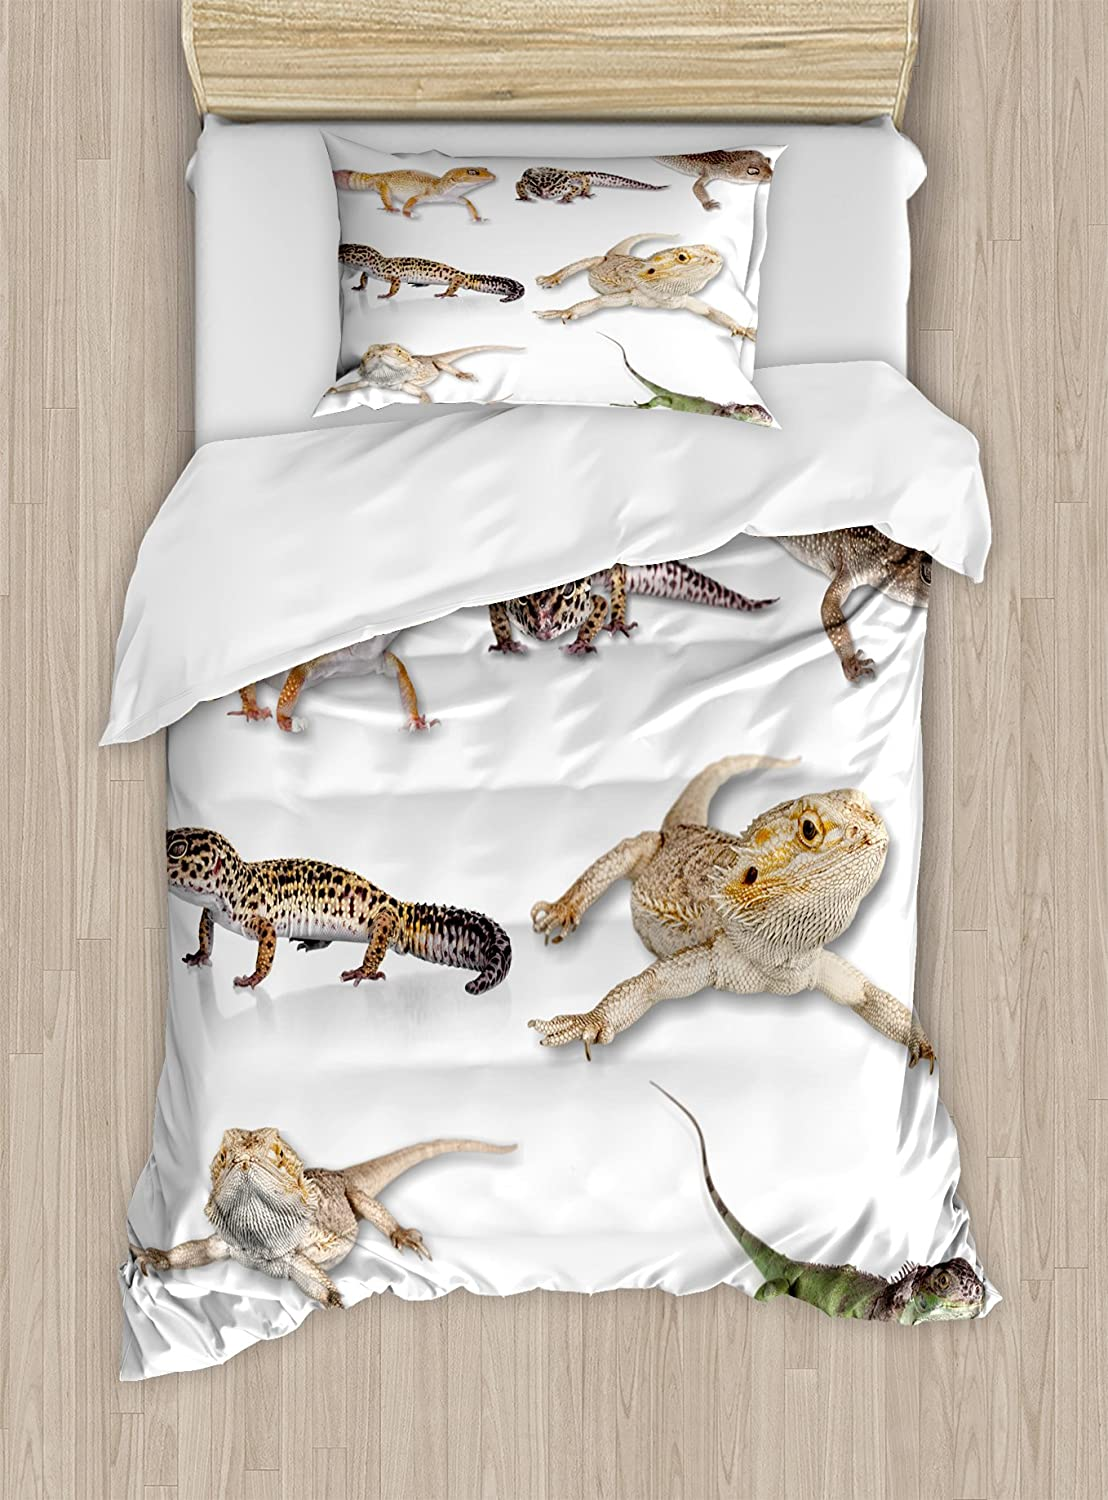 Ambesonne Reptile Duvet Cover Set, Colorful Staring Leopard Gecko Family Image Primitive Reptiles Wildlife Art Print, Decorative 2 Piece Bedding Set with 1 Pillow Sham, Twin Size, Beige White